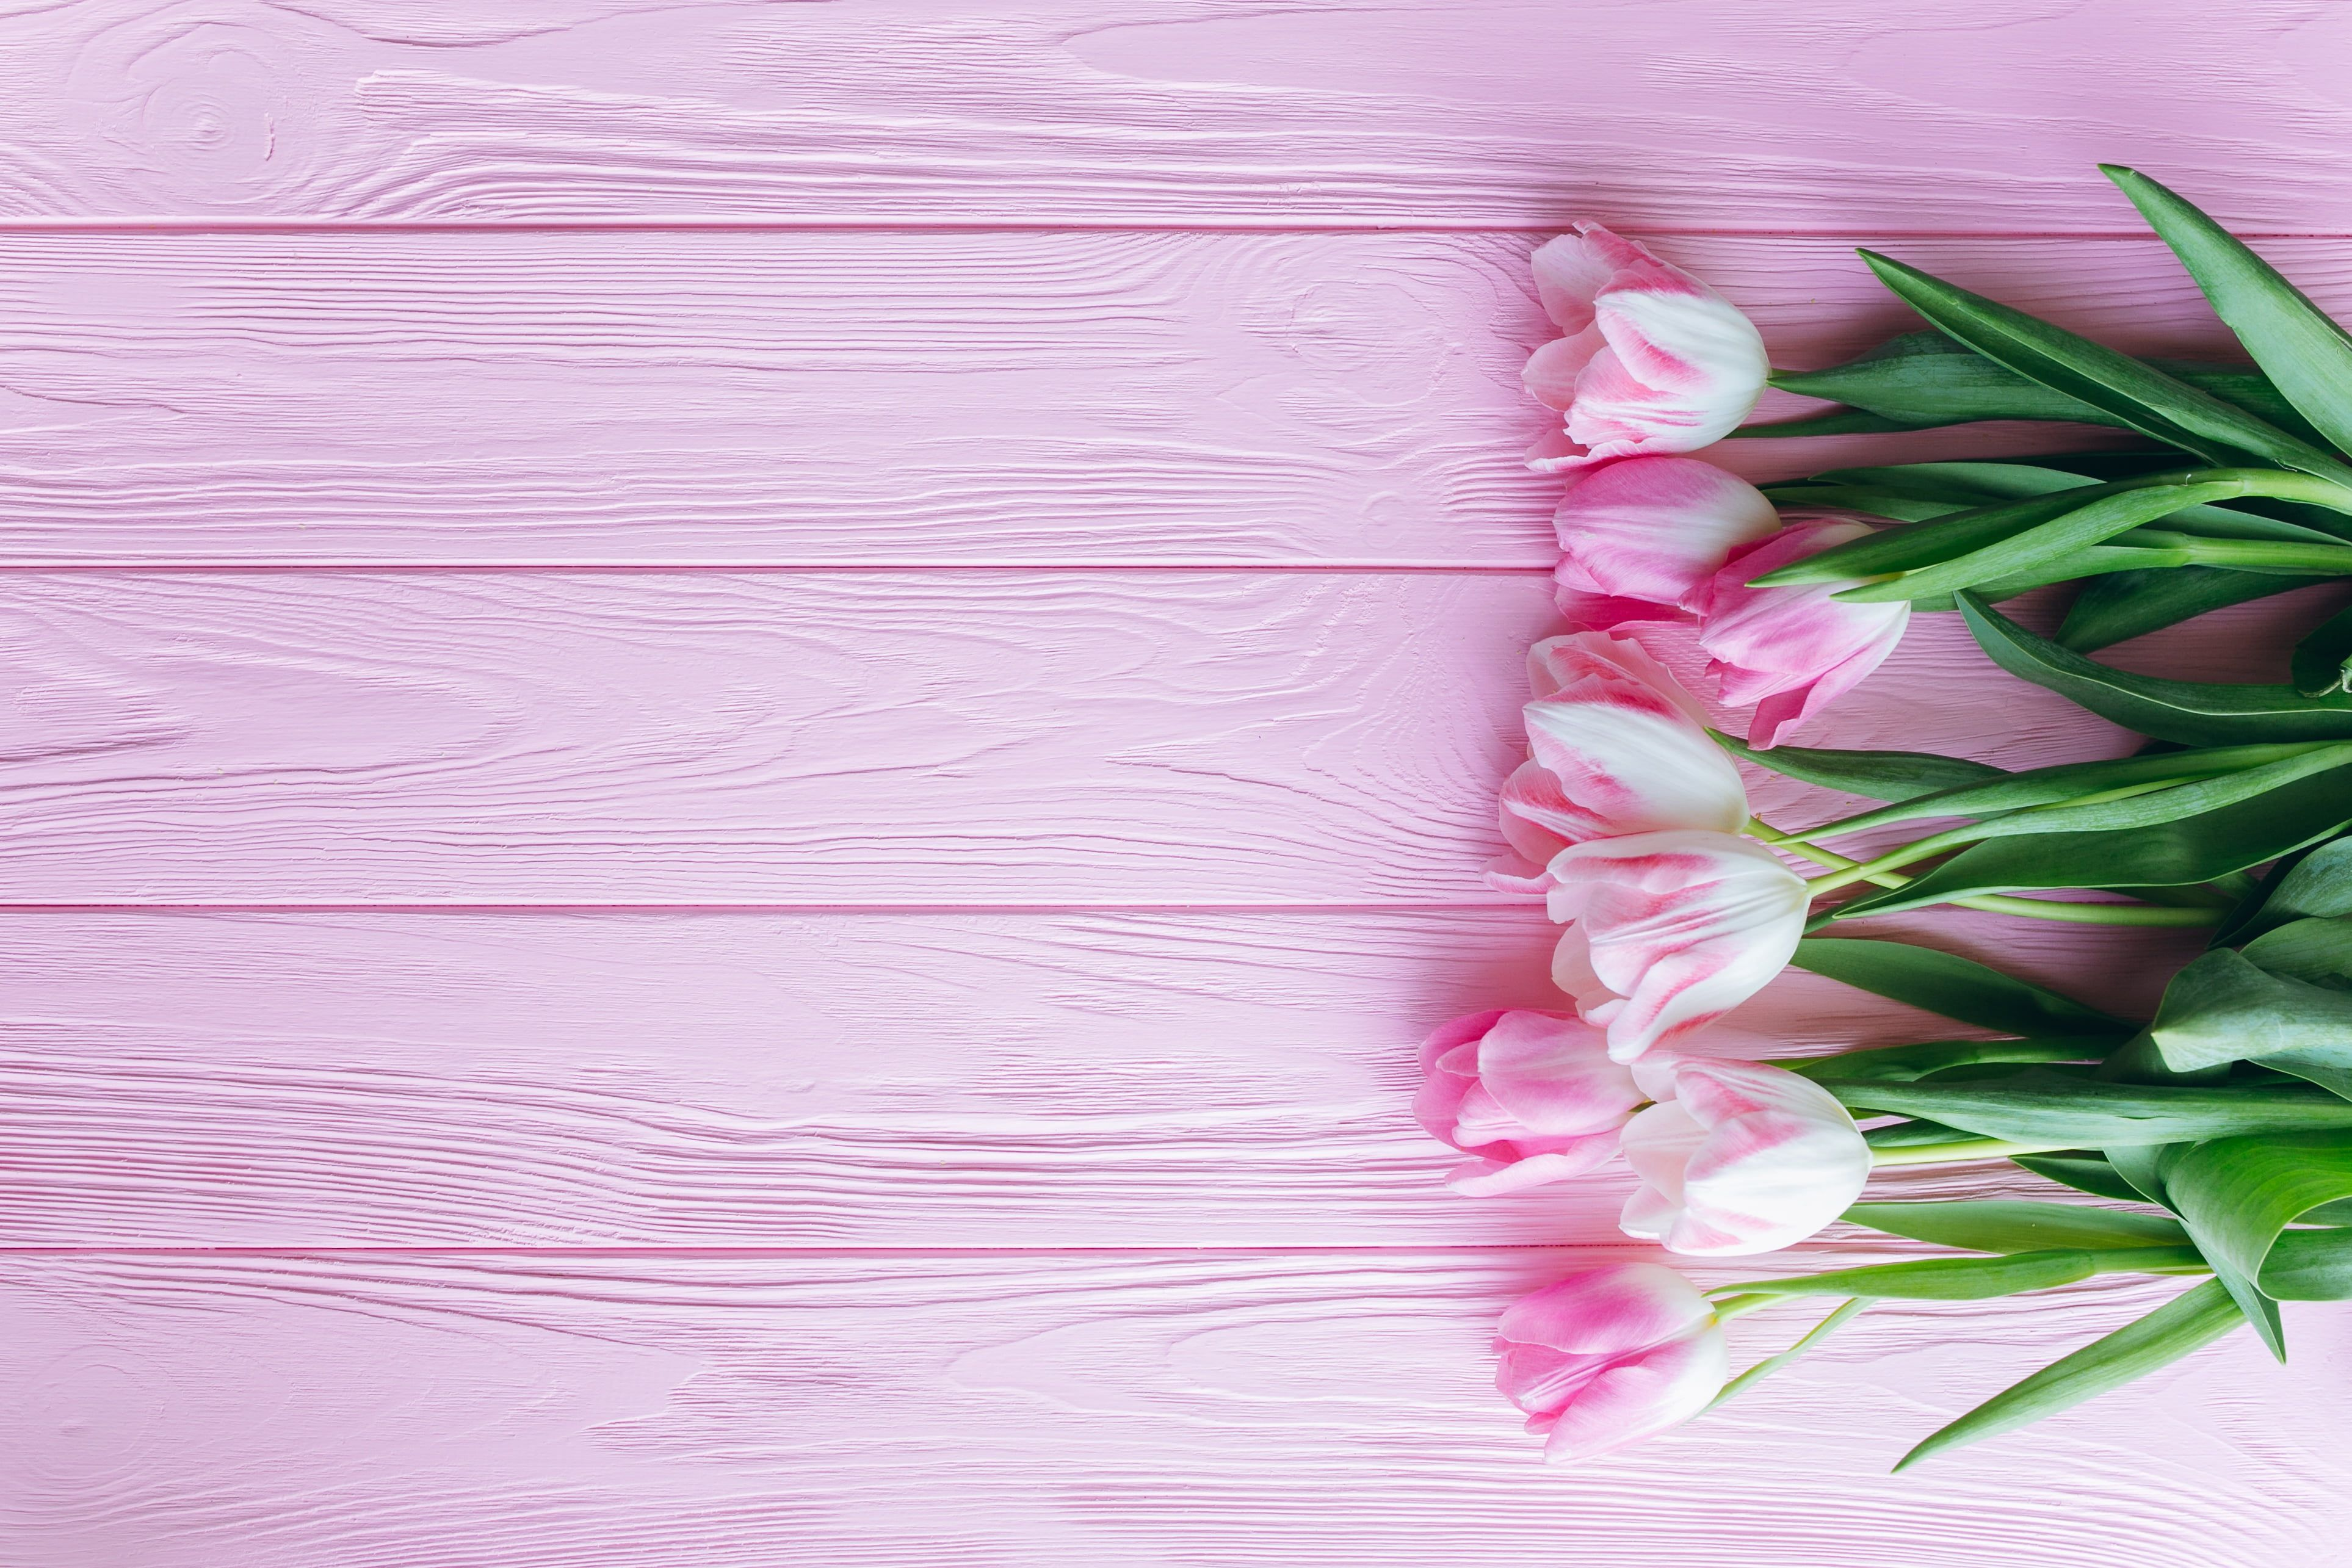 Pink Tulips Flowers Tulips Pink Wooden Background 4k